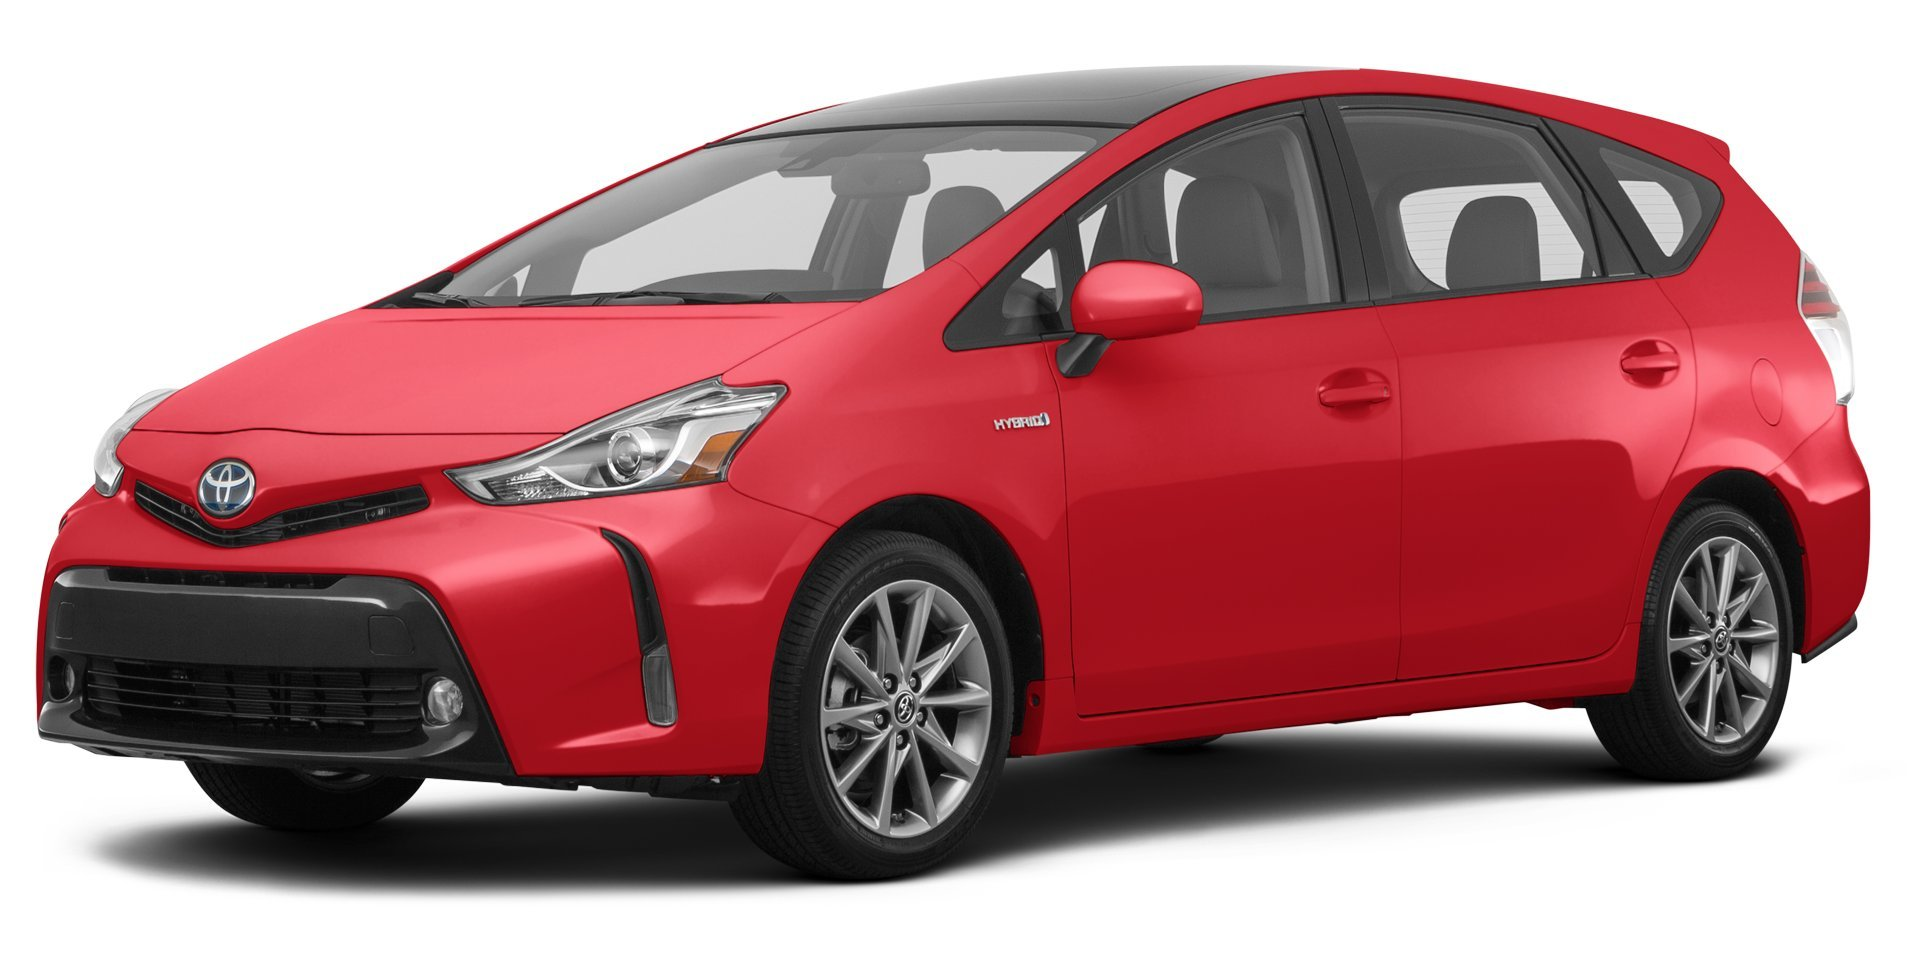 2017 toyota prius v reviews images and specs vehicles. Black Bedroom Furniture Sets. Home Design Ideas